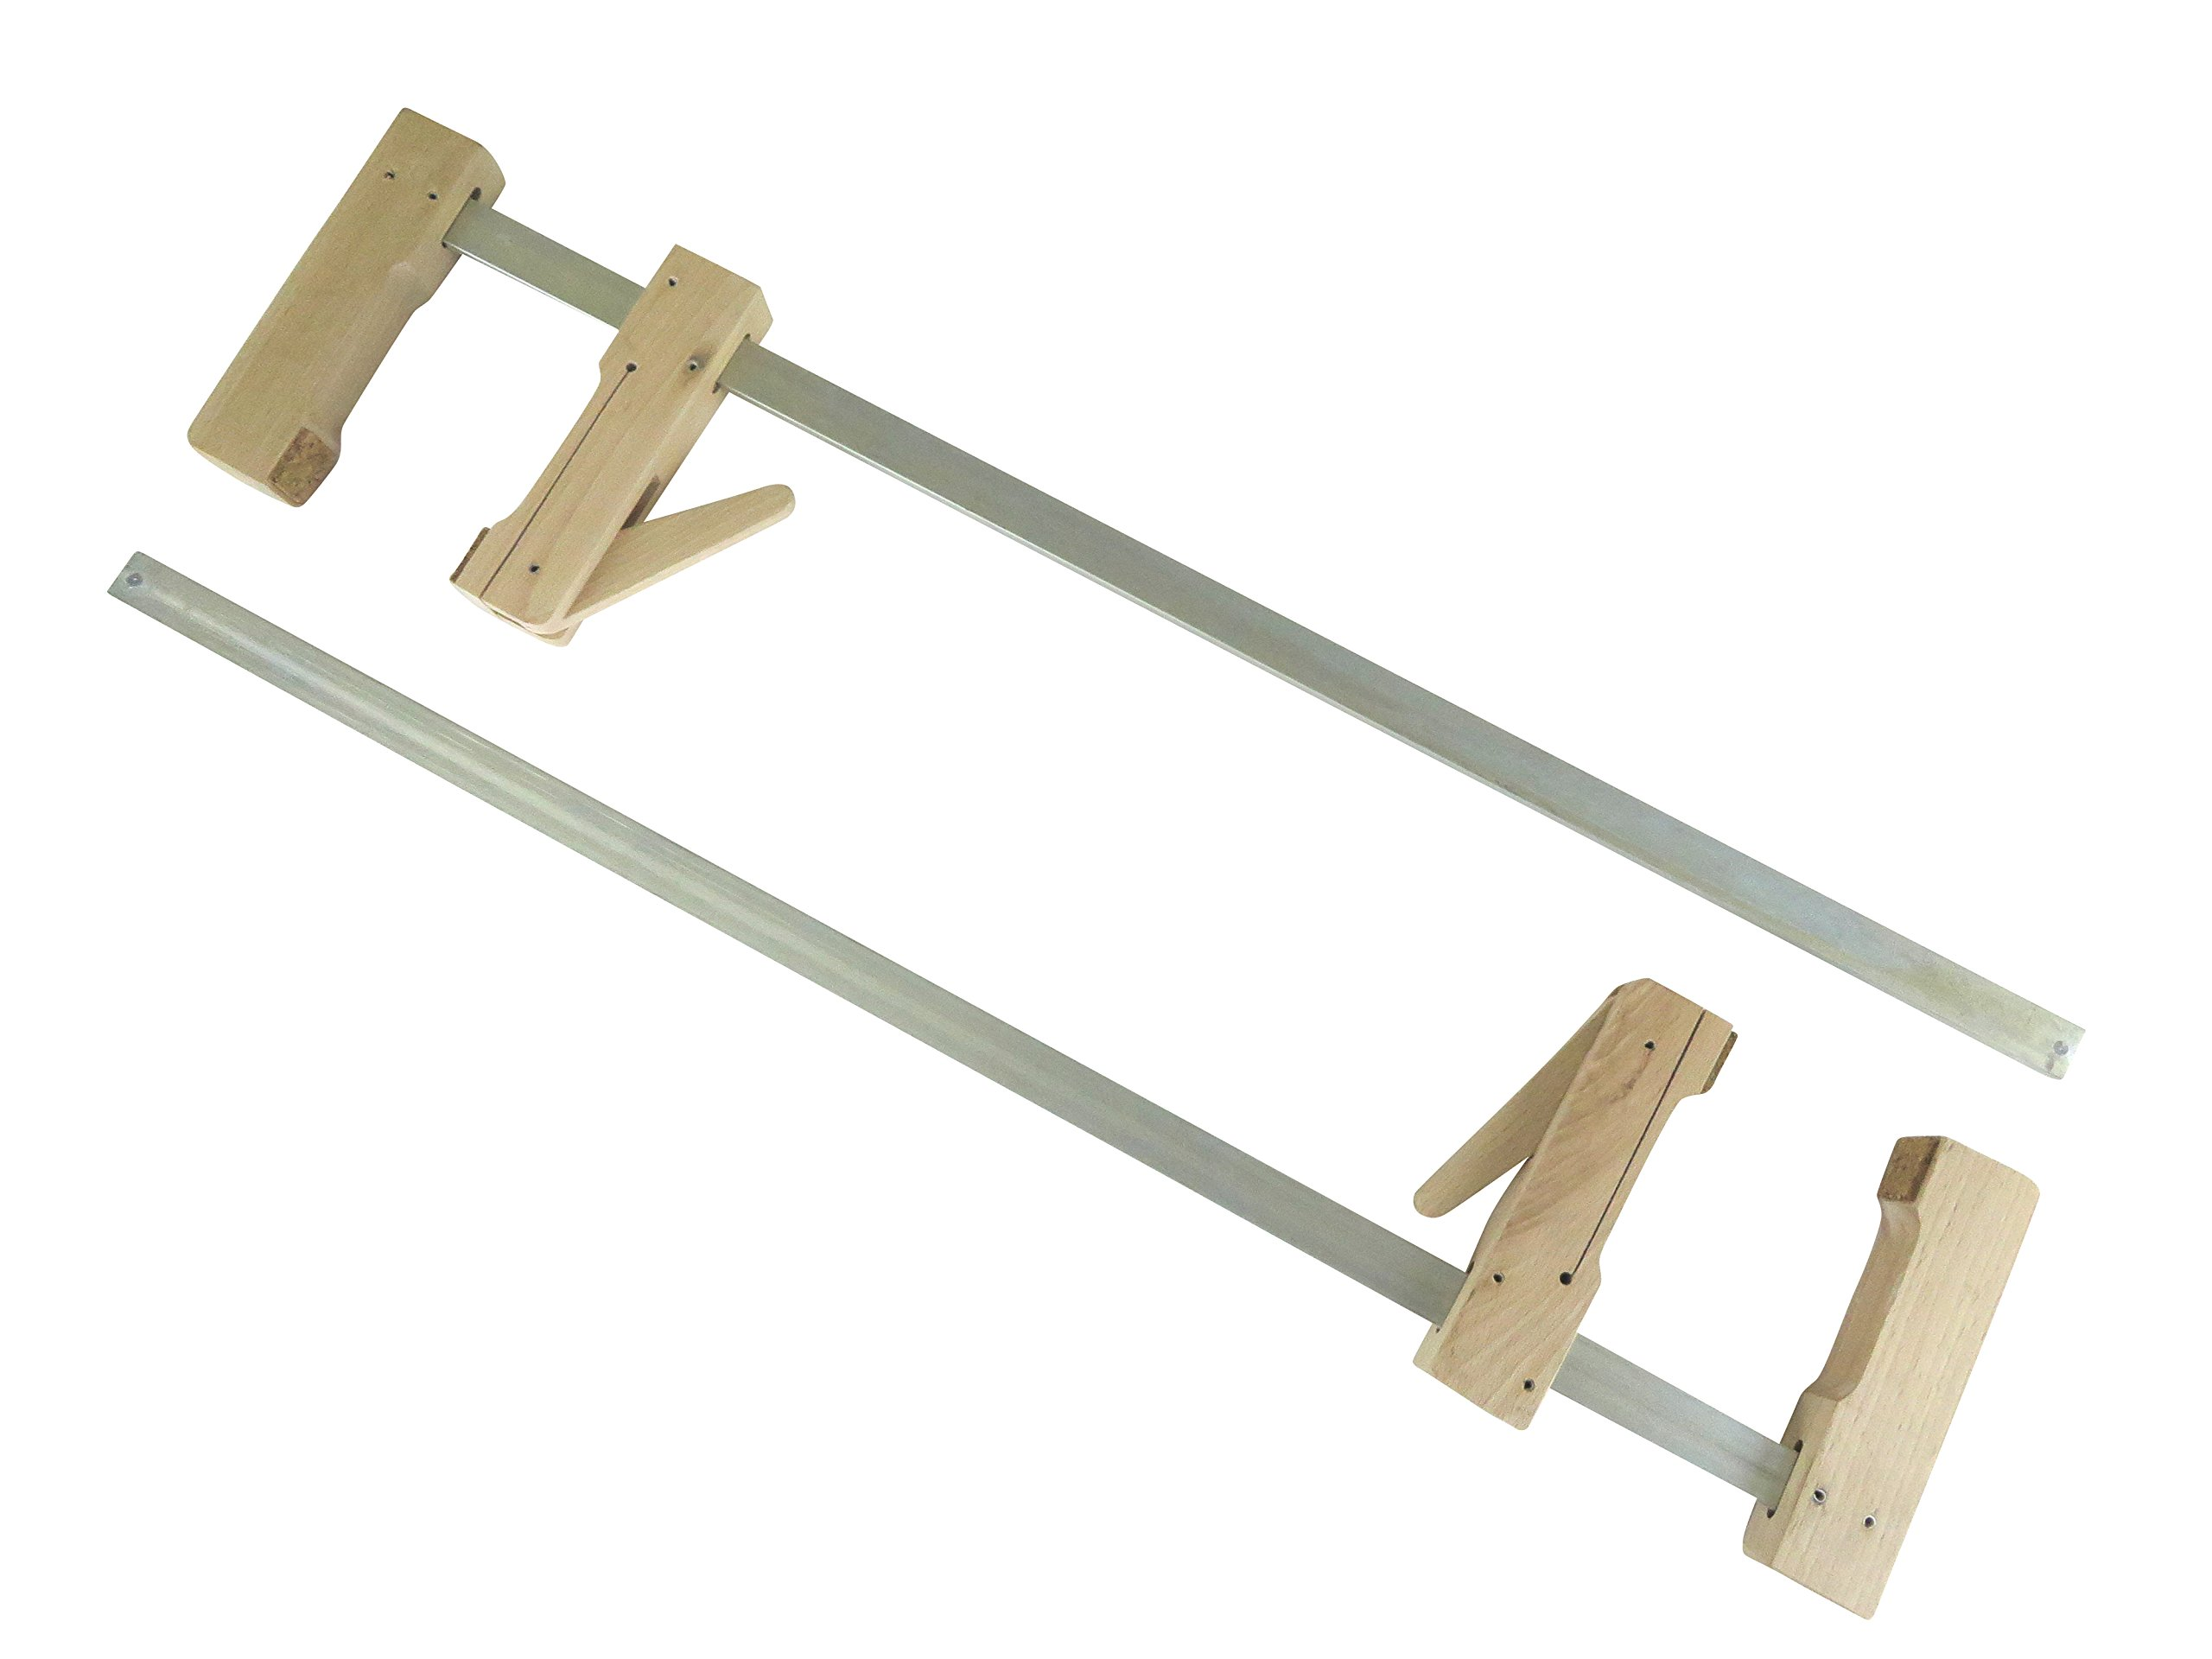 "2 each Pair Taytools 30-600 Wooden Wood Cam Action Clamps 23-1/2"" Opening by 4-1/4"" Depth European Beech"